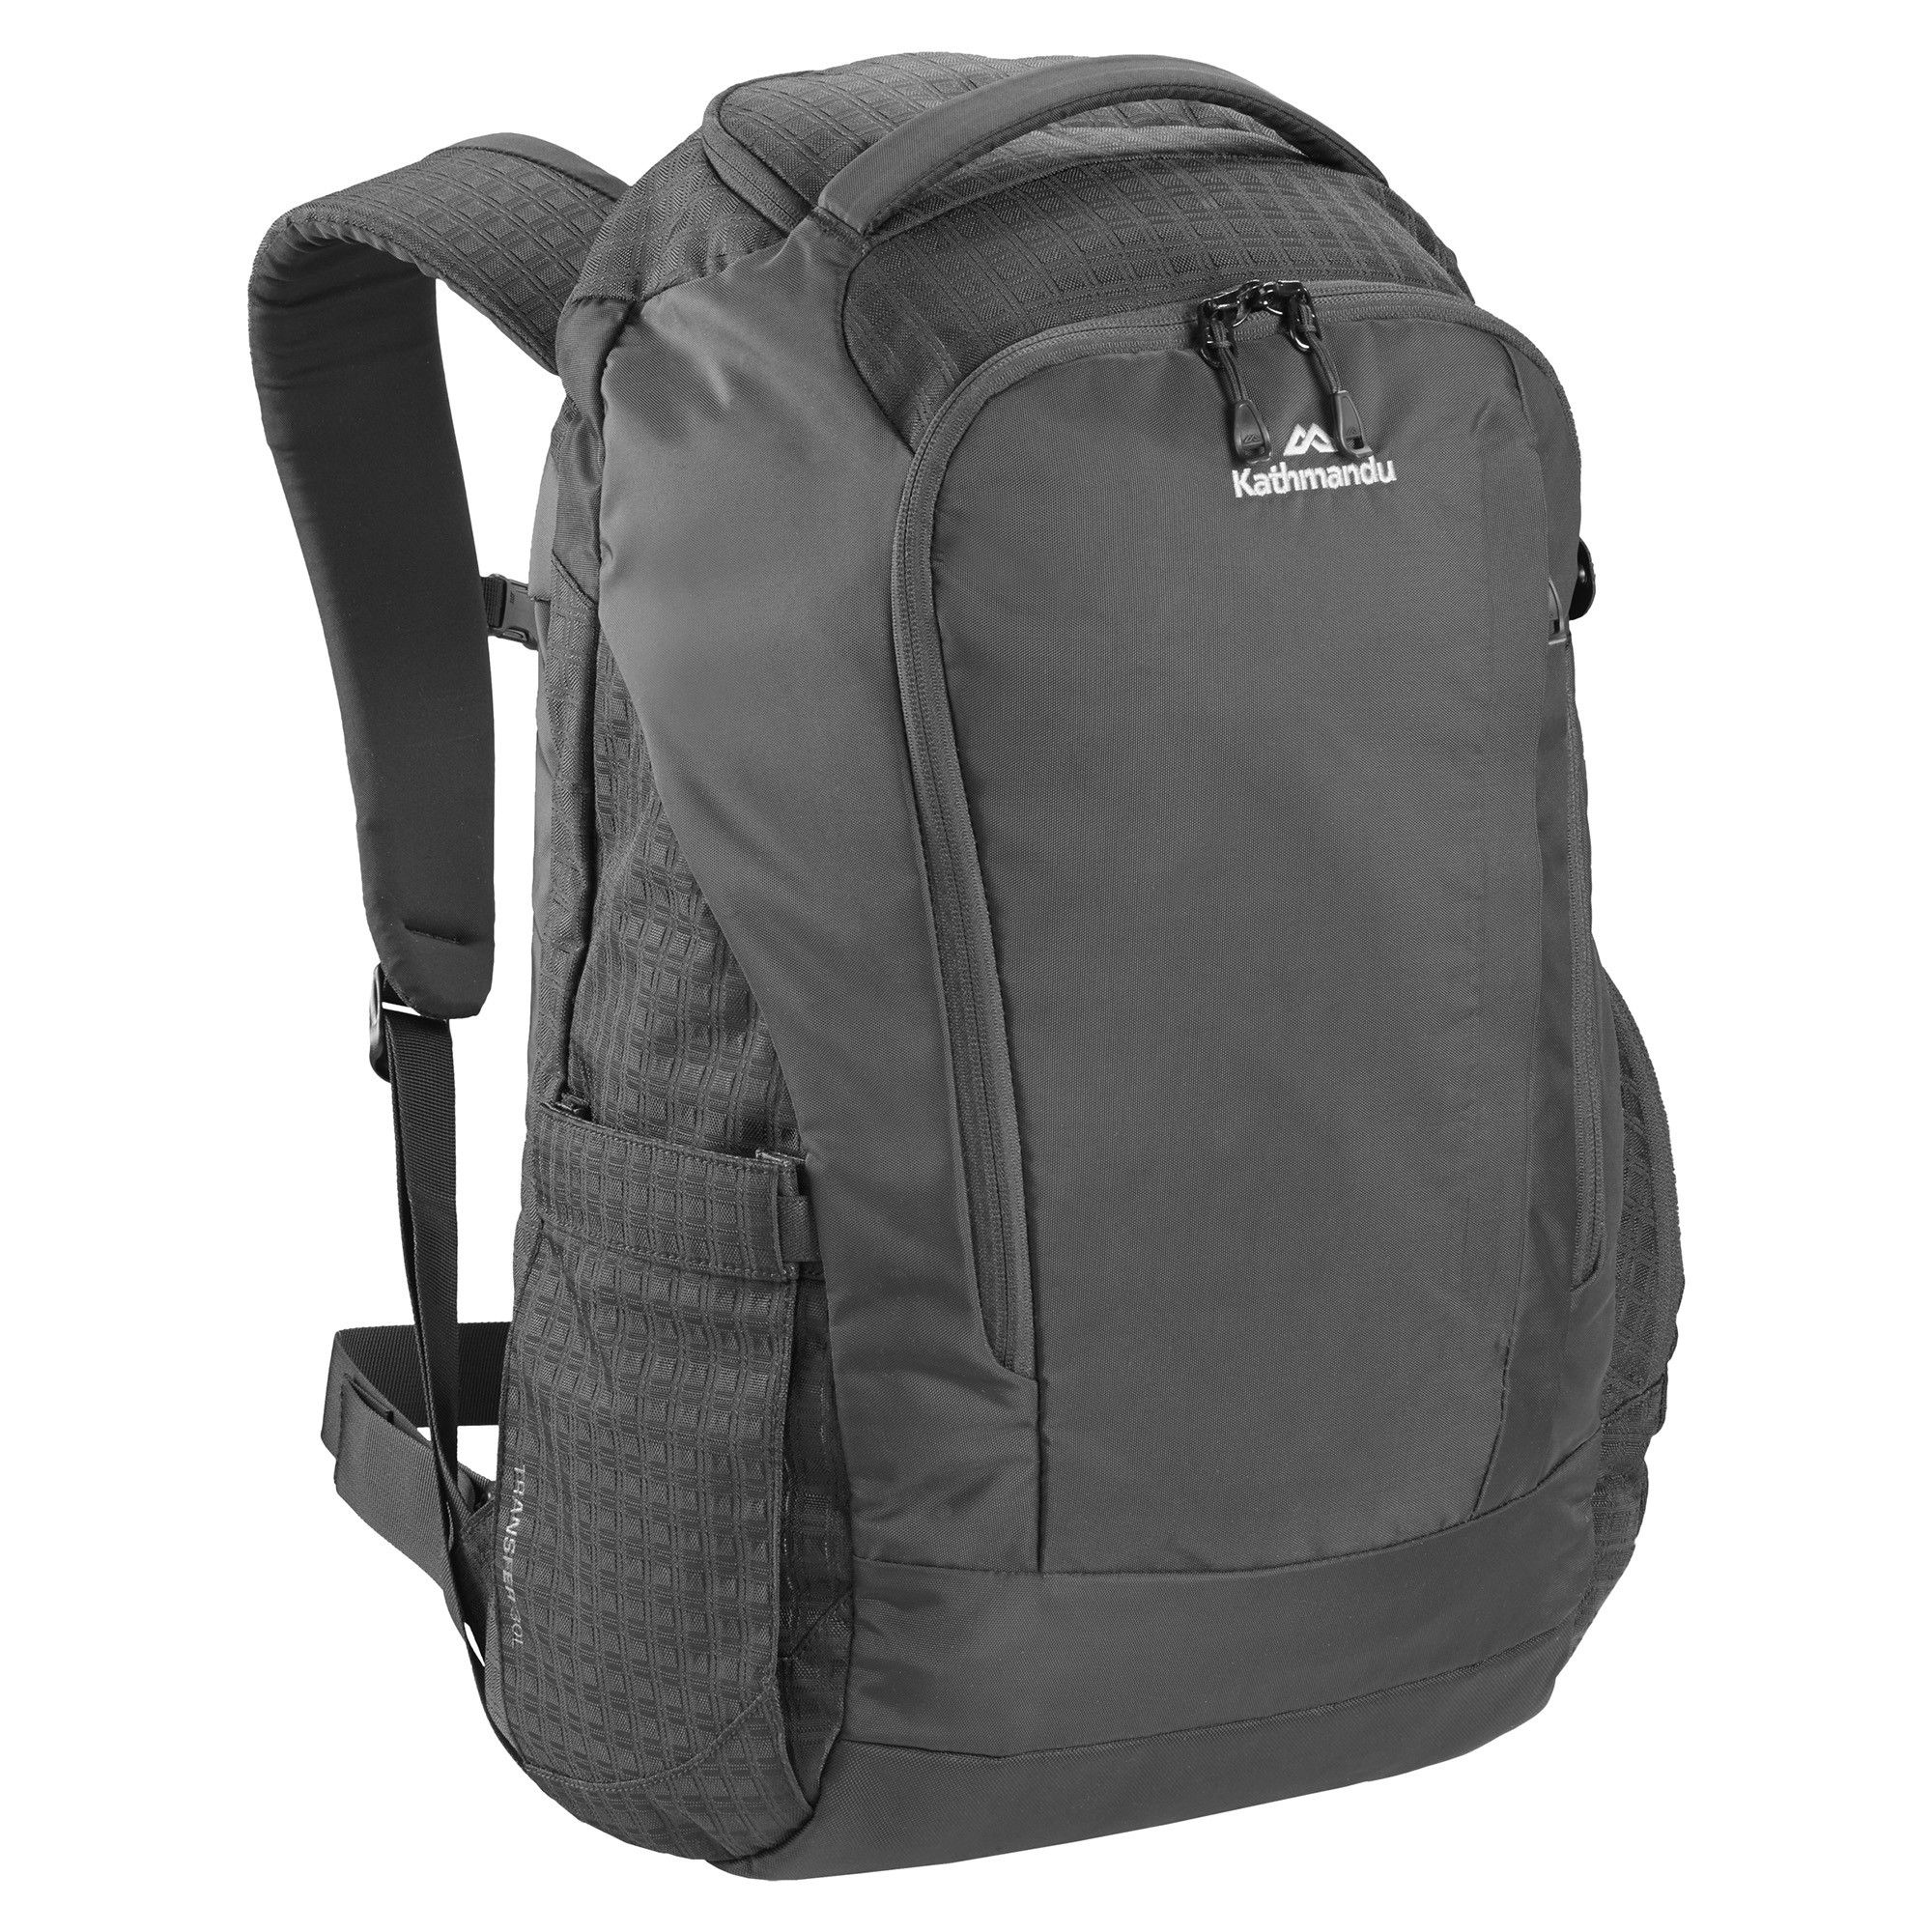 44e50d21a6 30L Travel Backpack